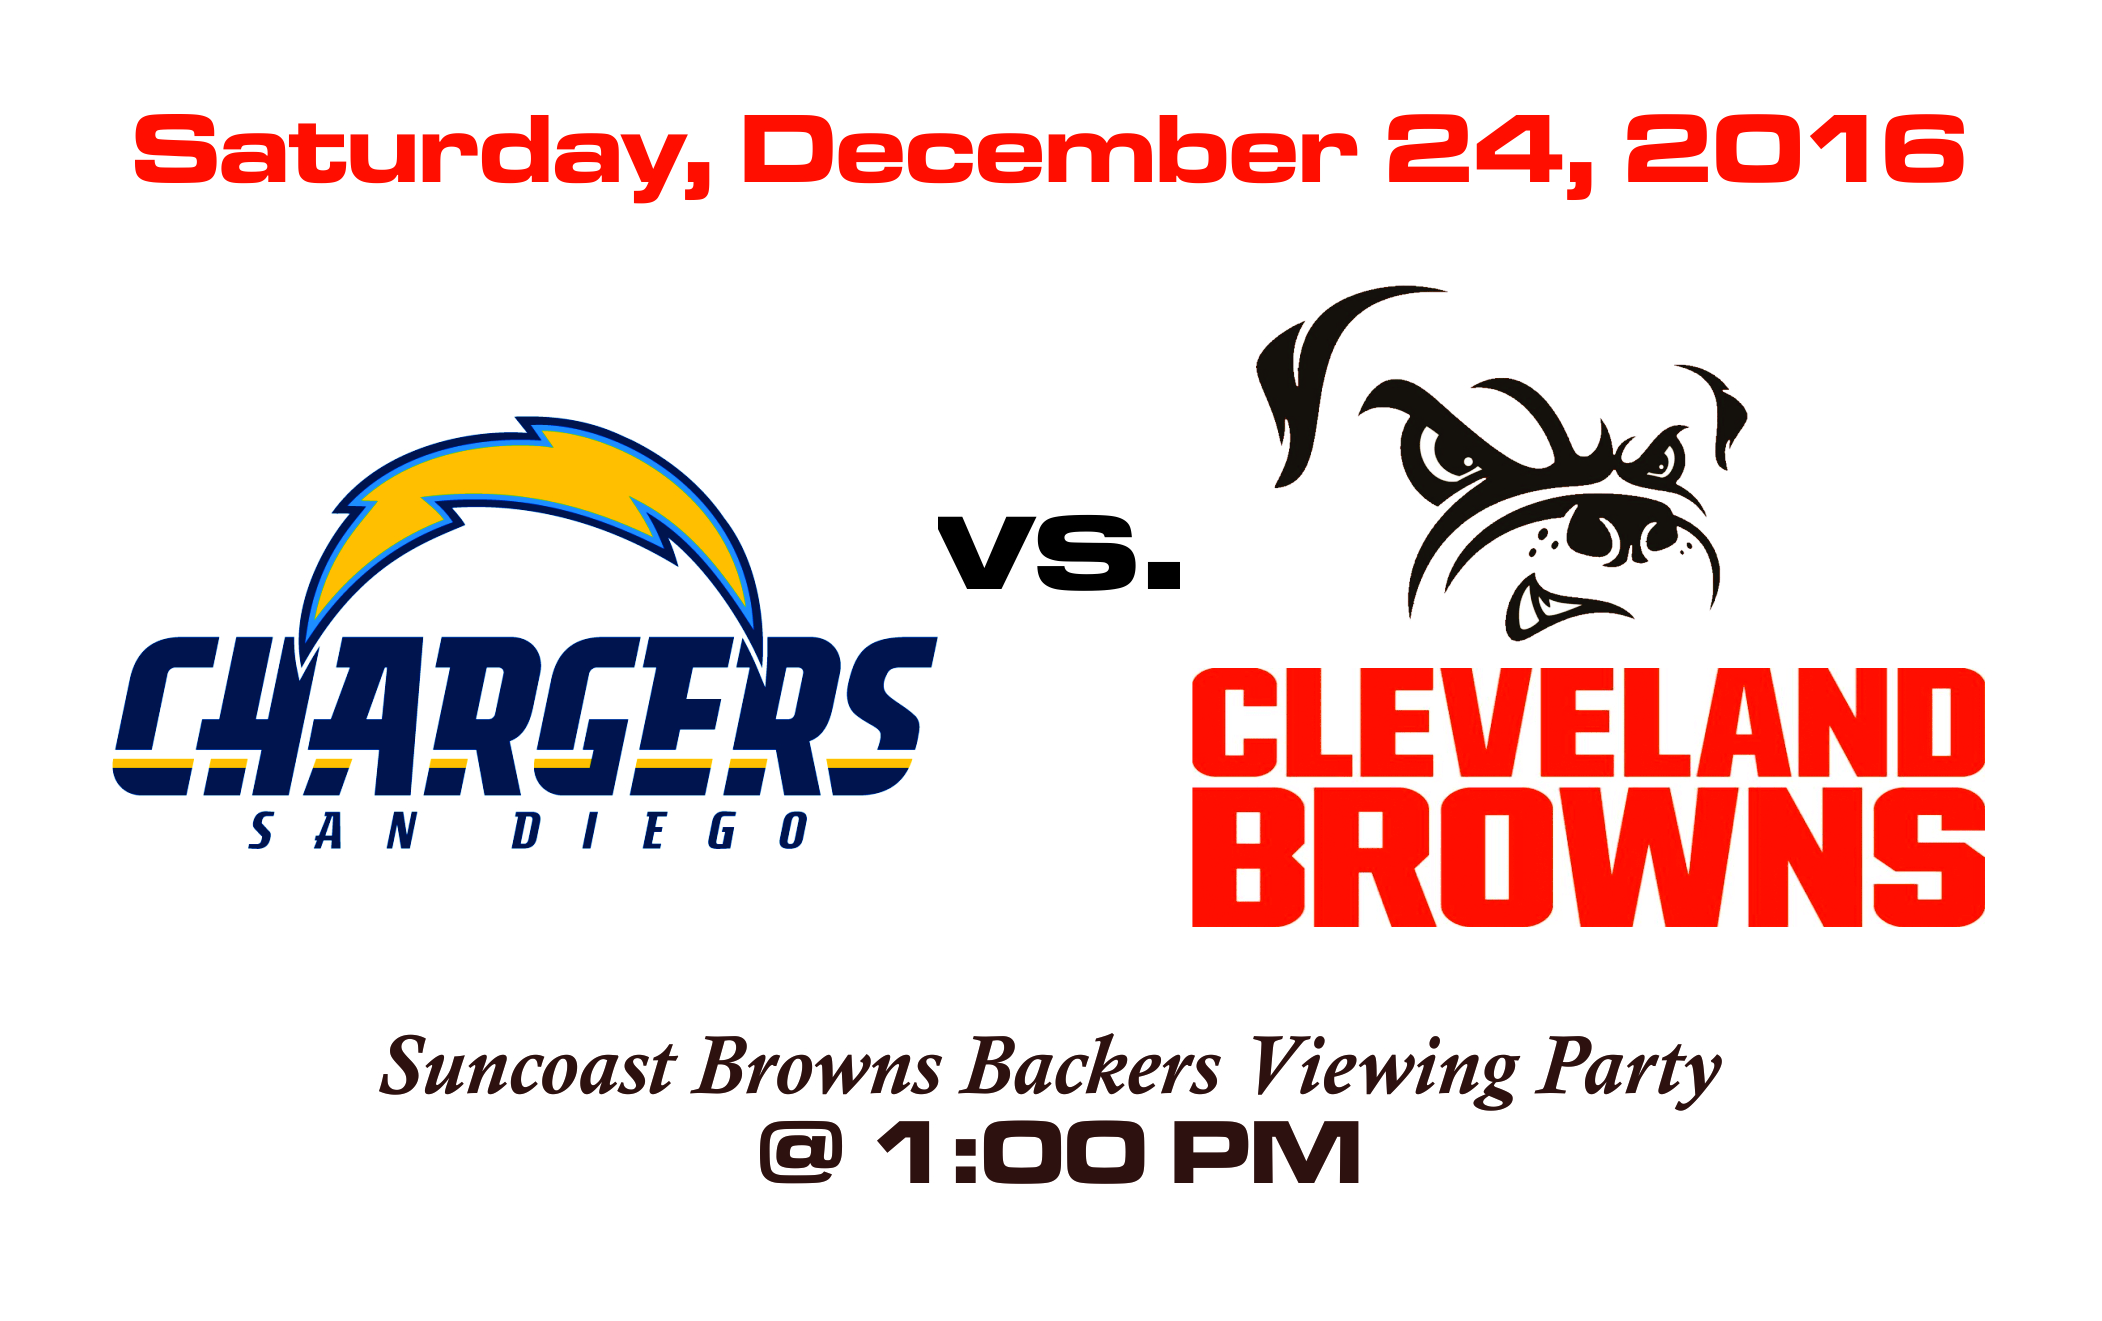 chargersbrowns122416